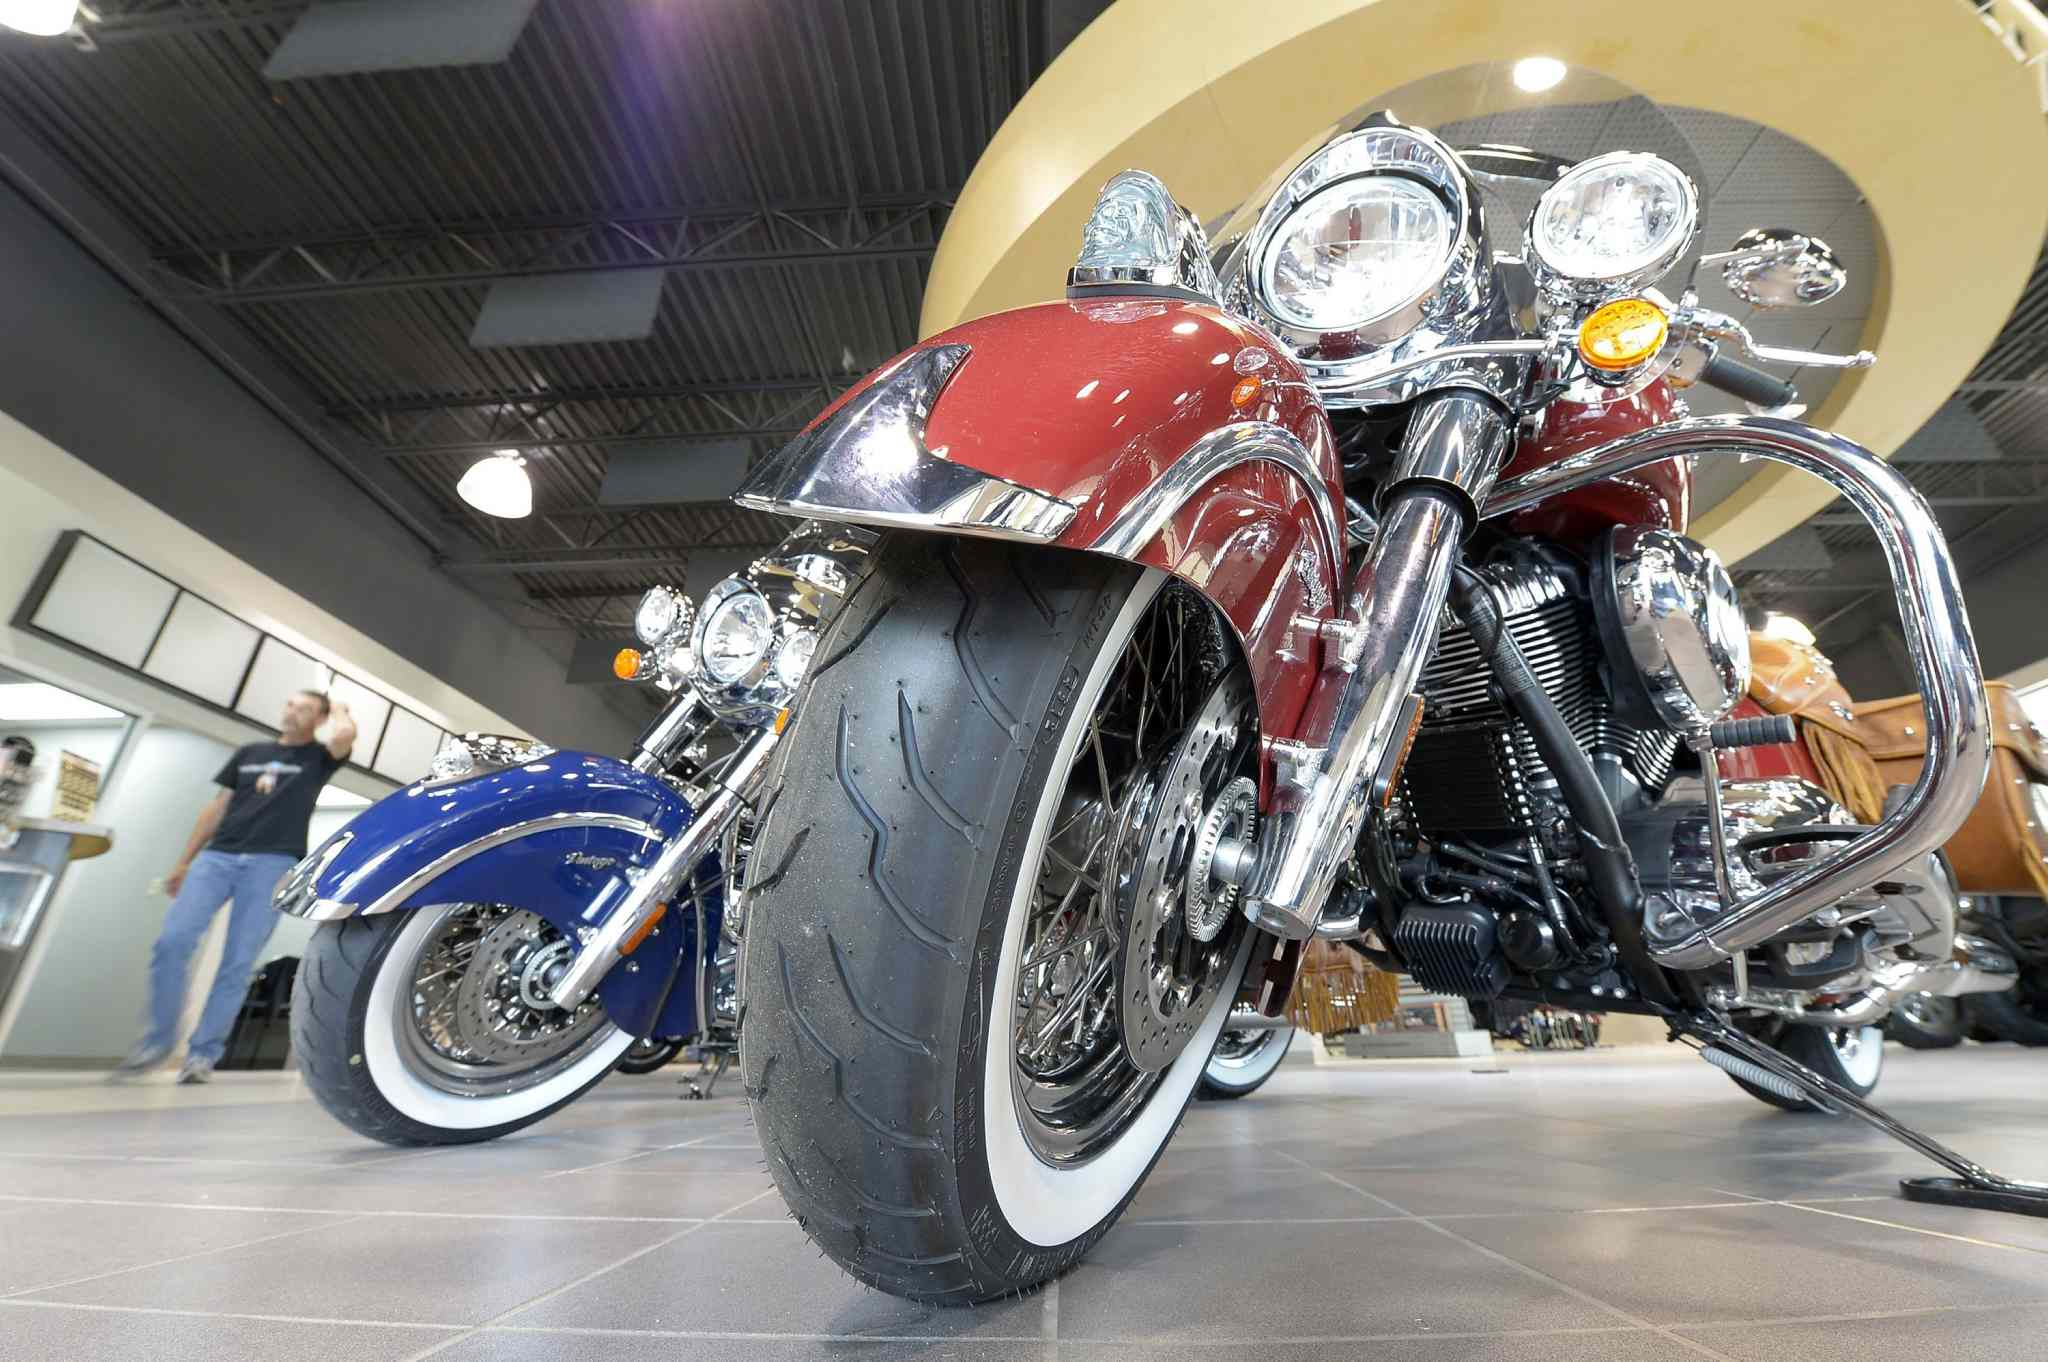 The Indian Motorcycle brand goes beyond motorcycles, with its apparel also being popular.